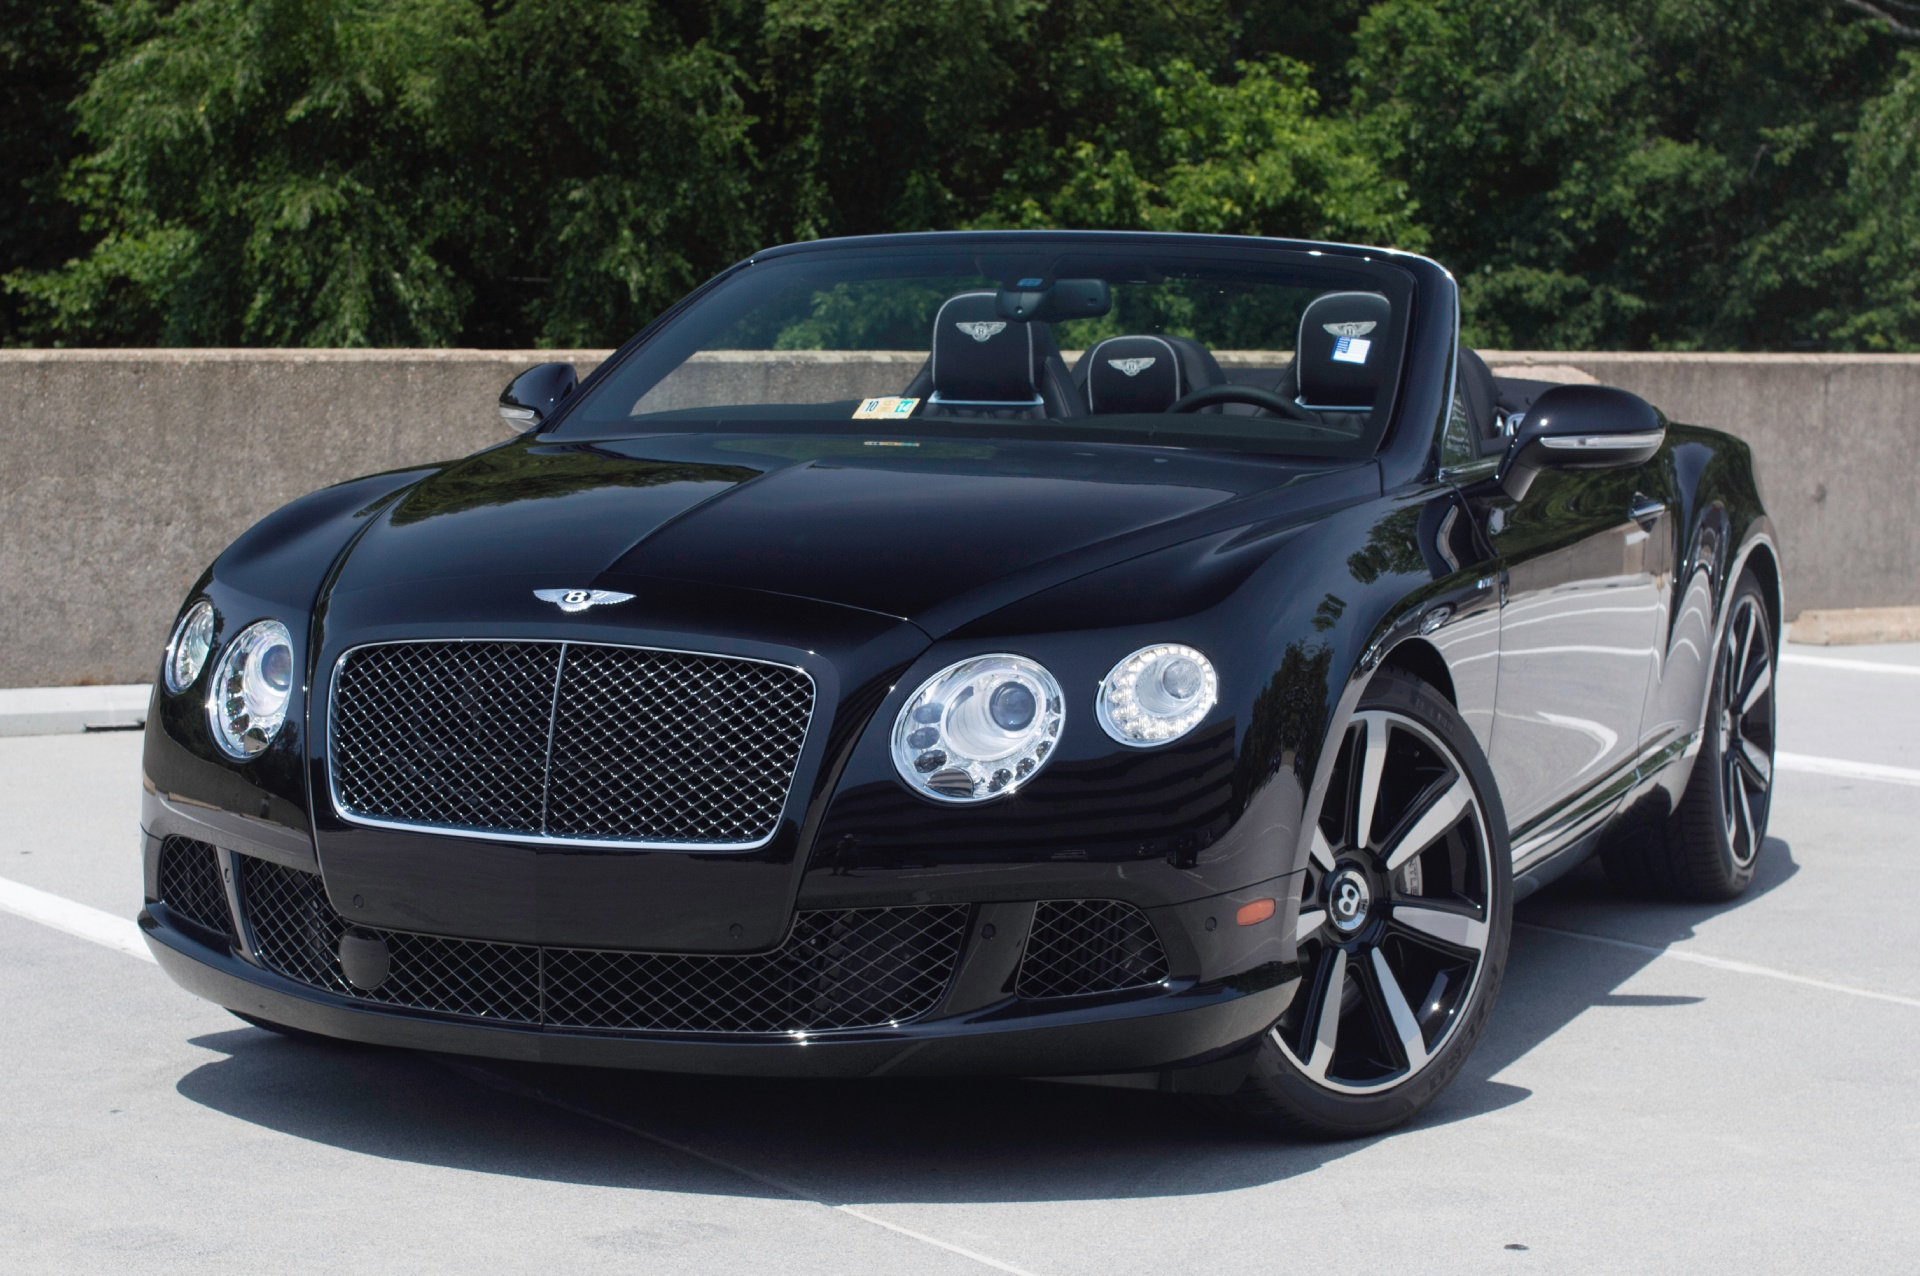 2014 bentley continental gtc speed gt speed stock # 4n090028 for